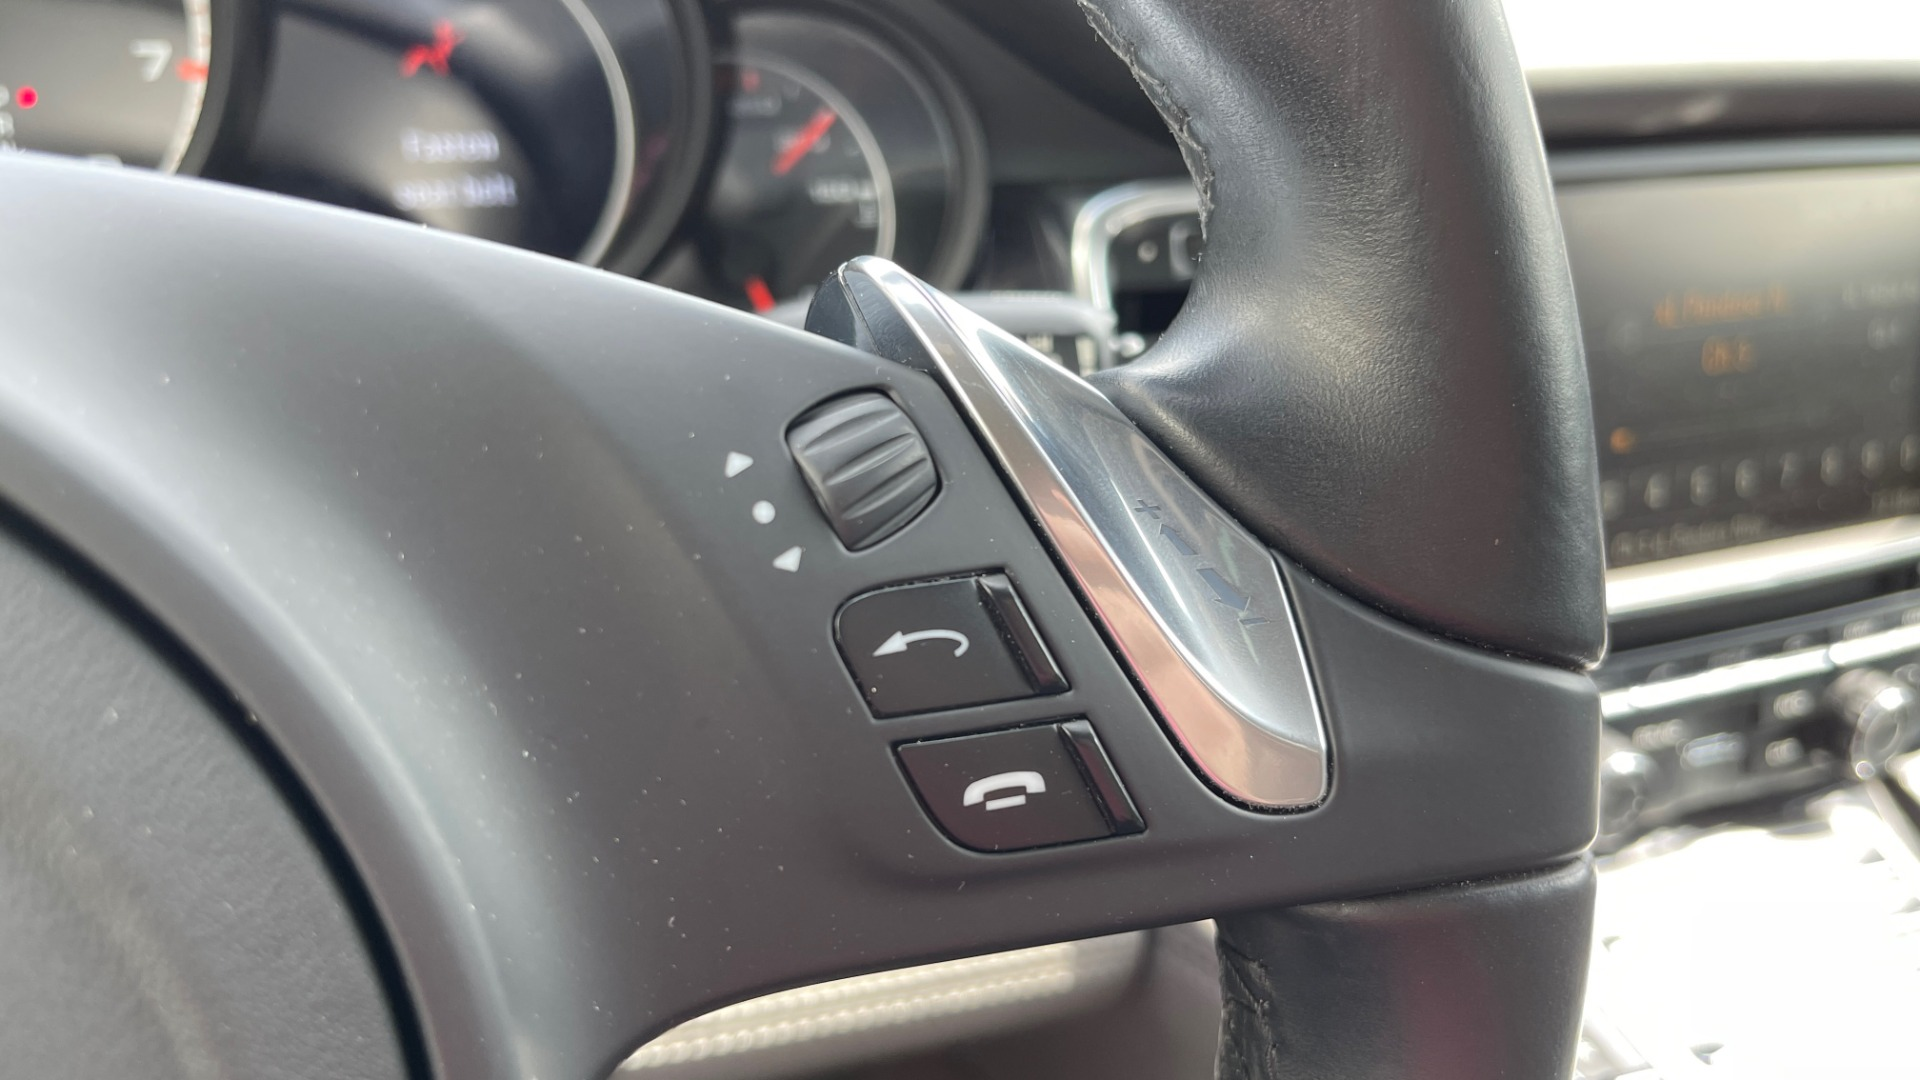 Used 2010 Porsche PANAMERA 4DR HB TURBO / SPORT CHRONO / BOSE / AUTO CLIMATE CONTROL for sale $42,124 at Formula Imports in Charlotte NC 28227 35